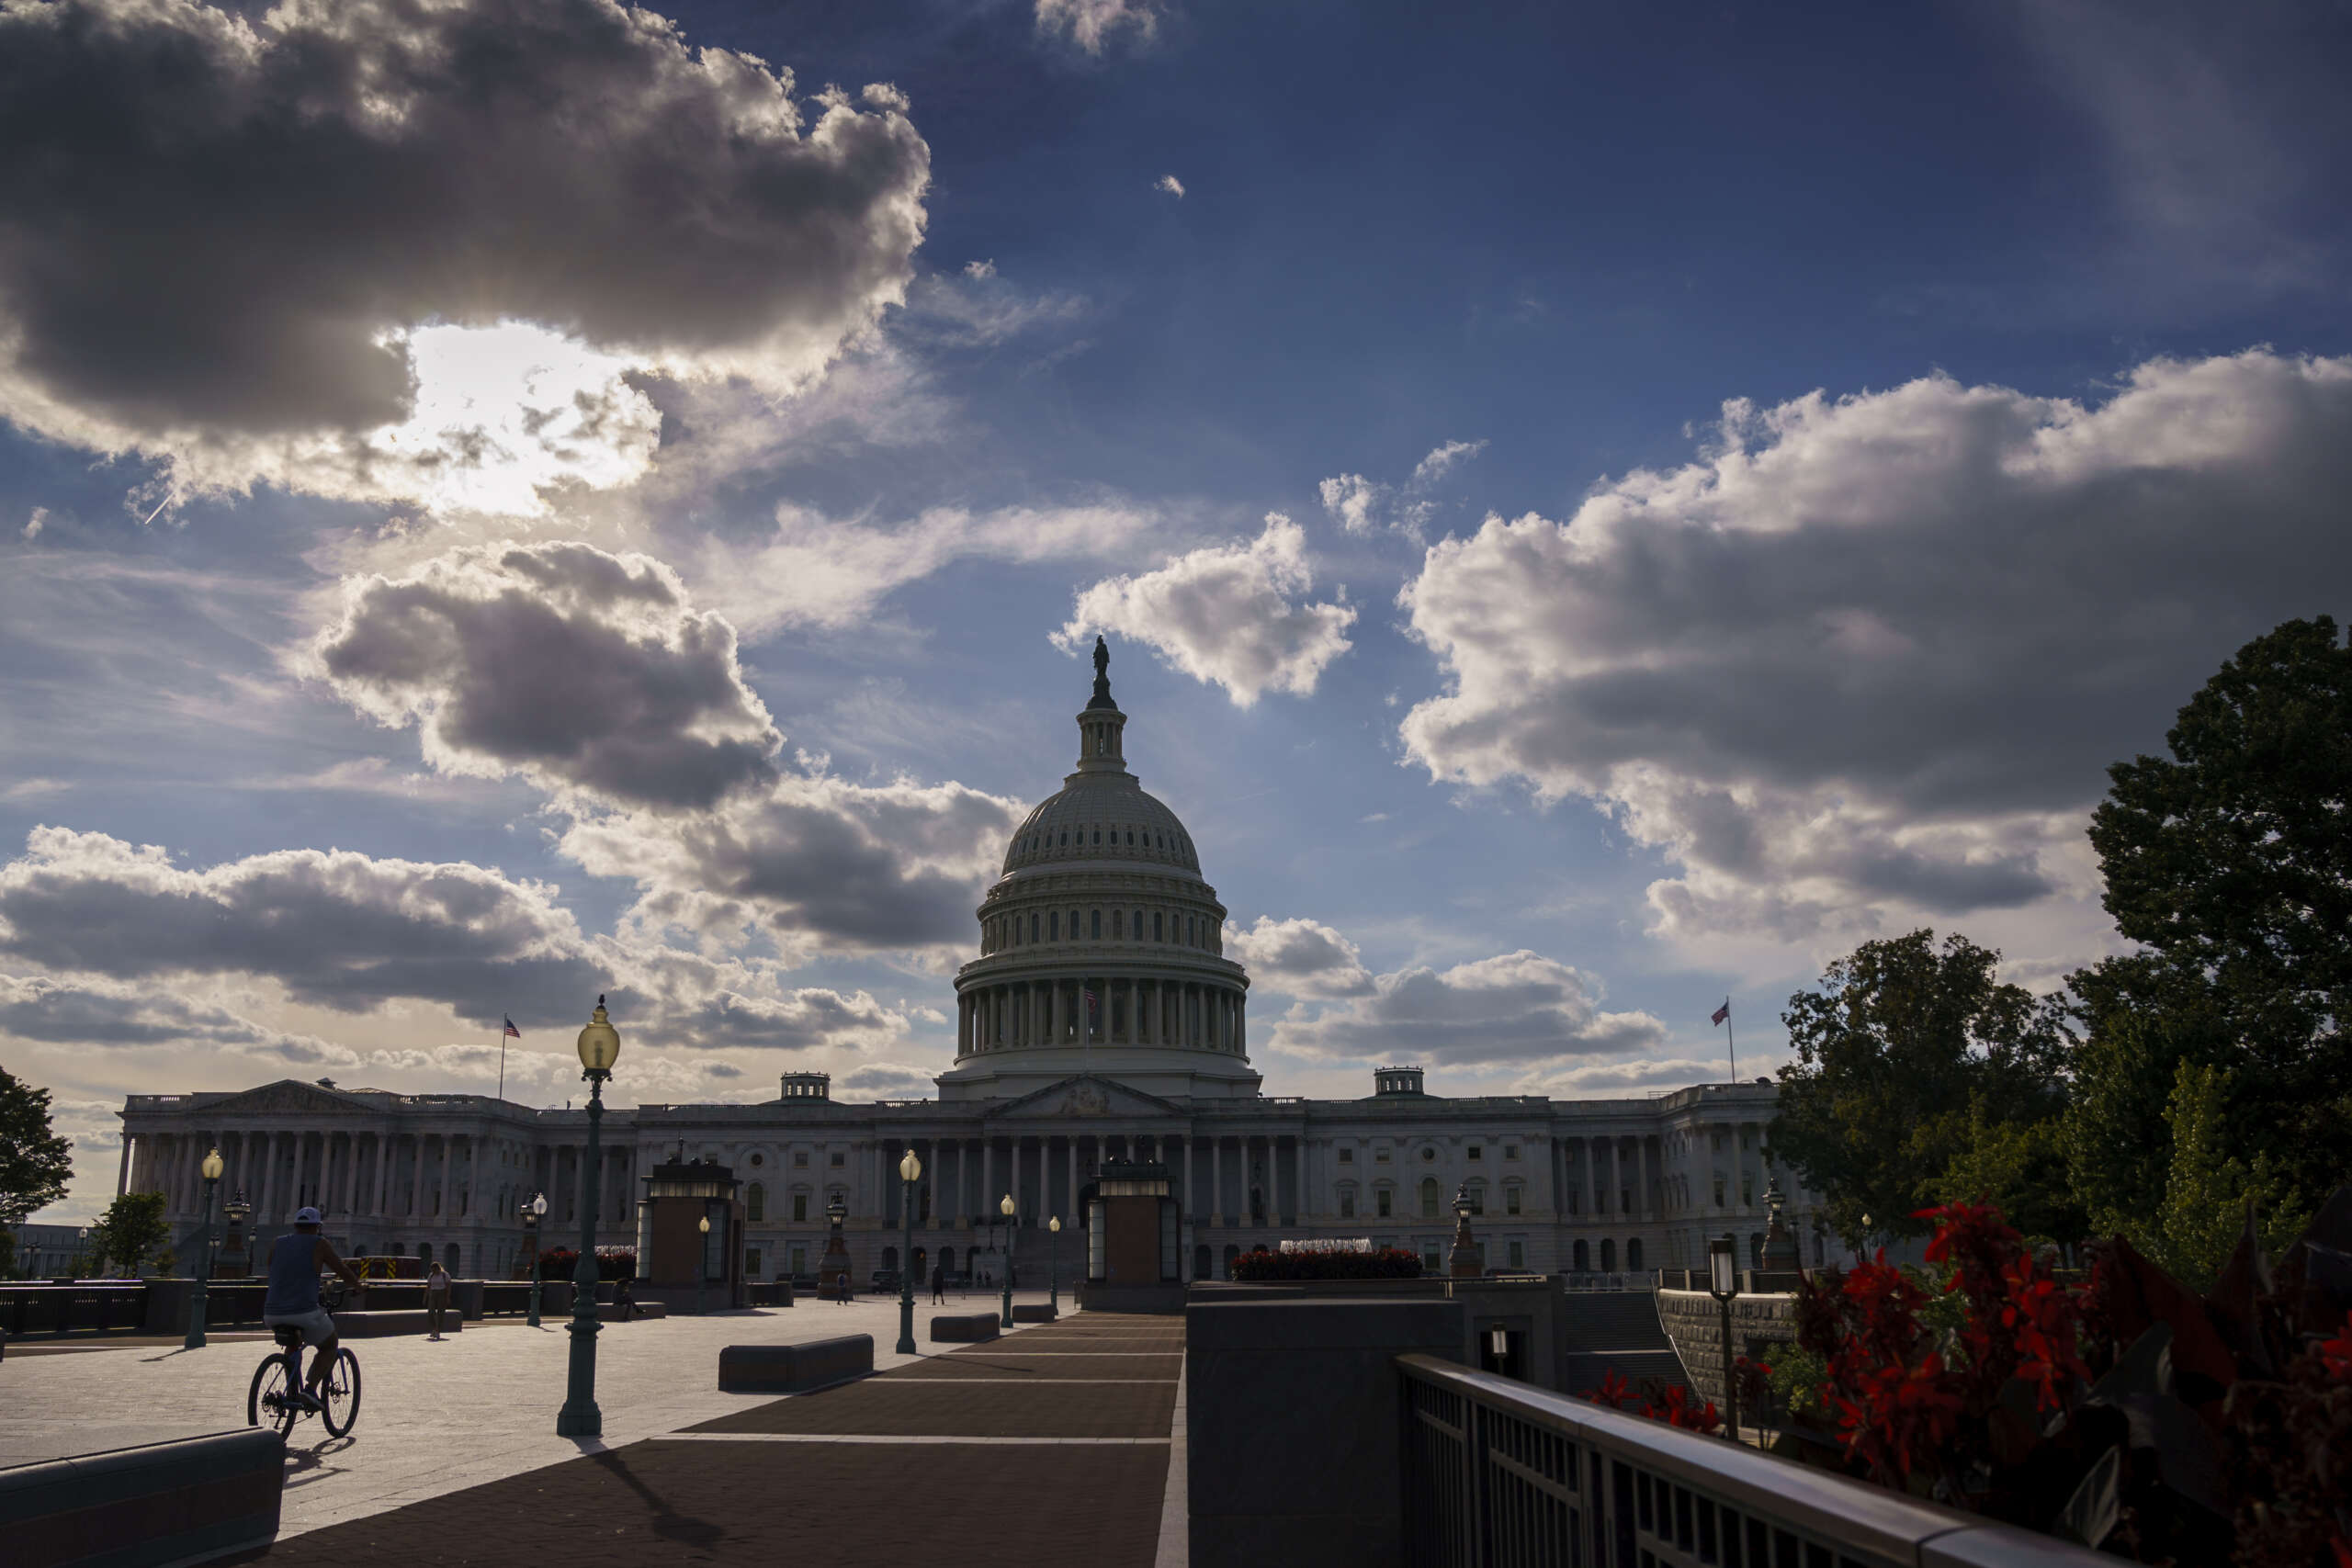 OMB tells agencies to start planning for possible government shutdown - Federal News Network